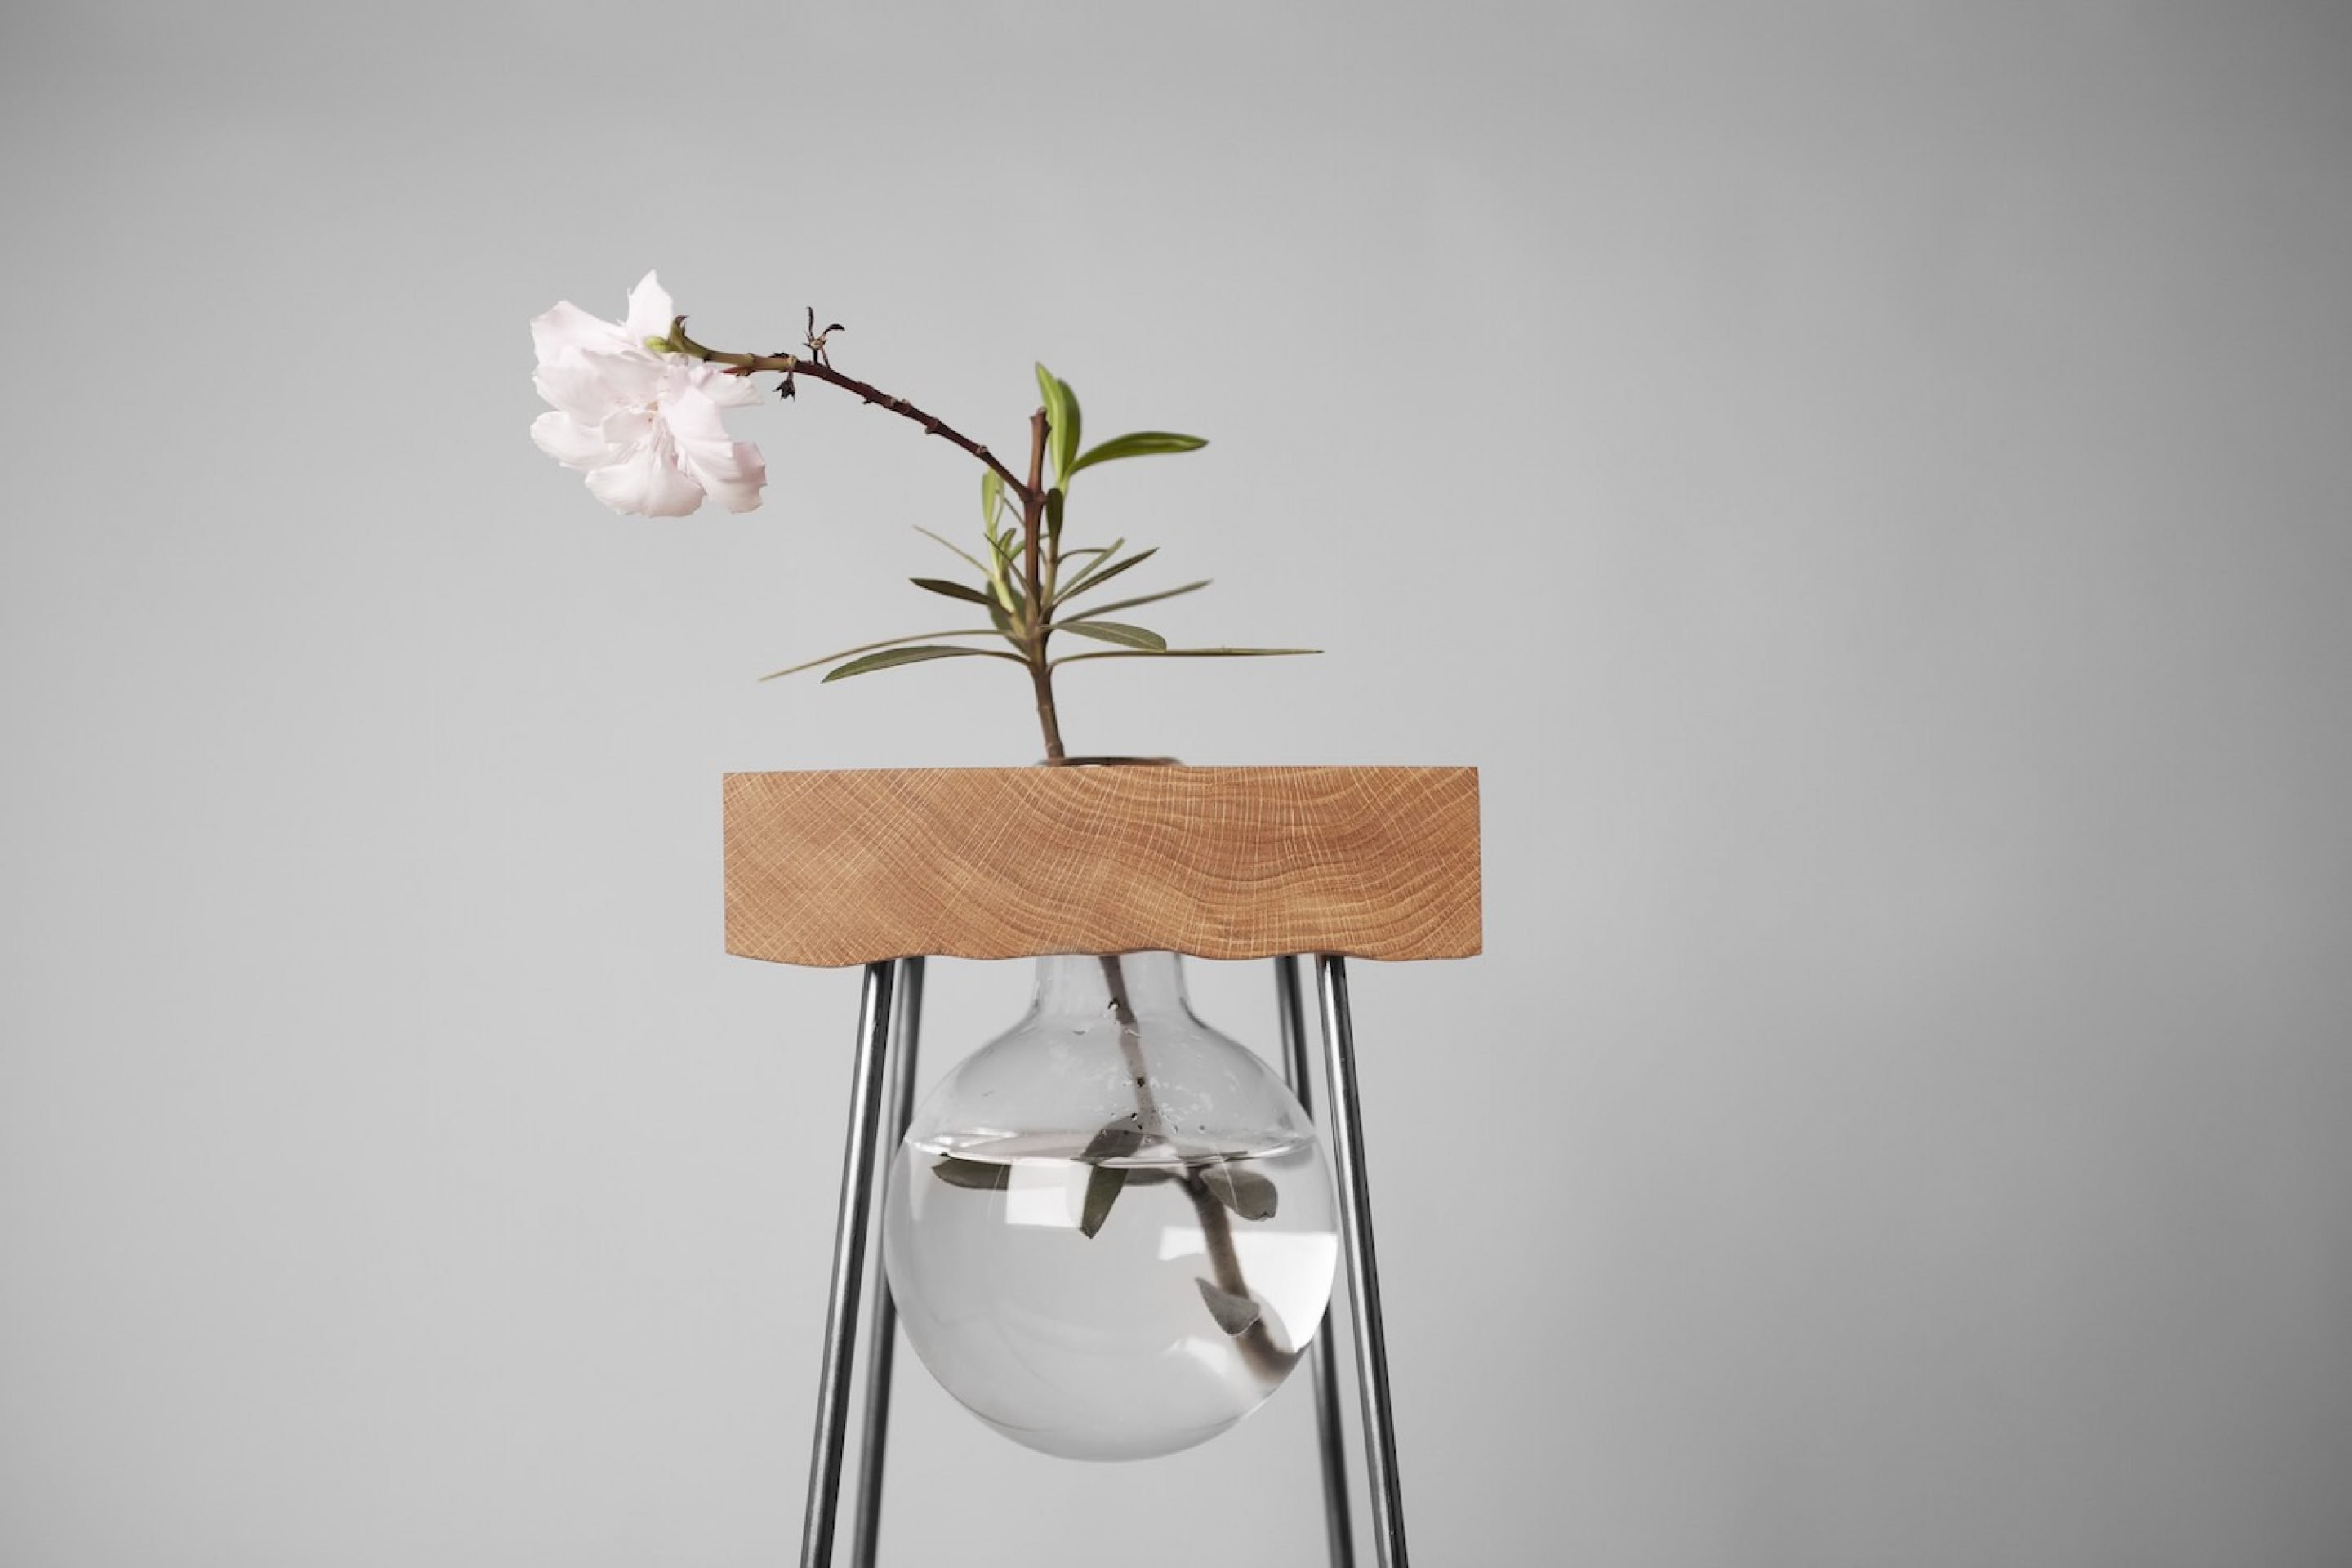 Design_Table_For_A_Flower_VJEMY_2